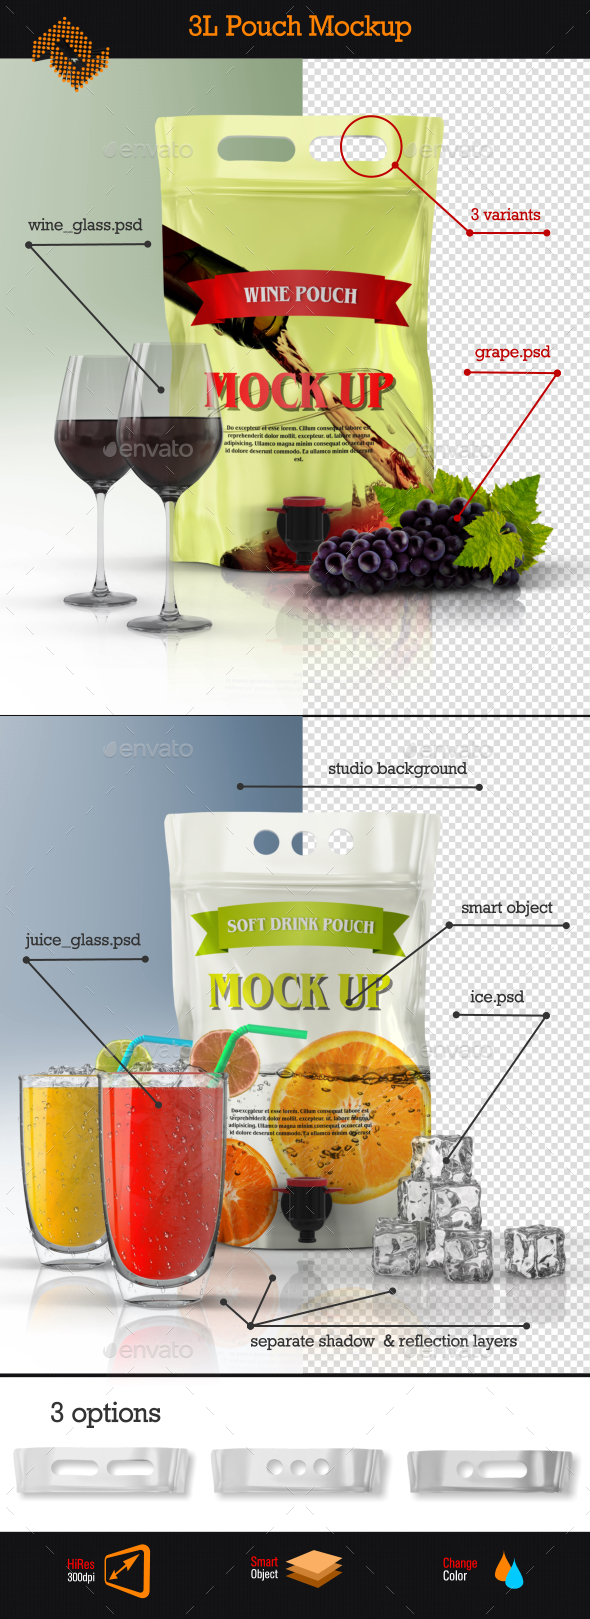 Stand Up Wine Pouch Bag Mockup - Food and Drink Packaging